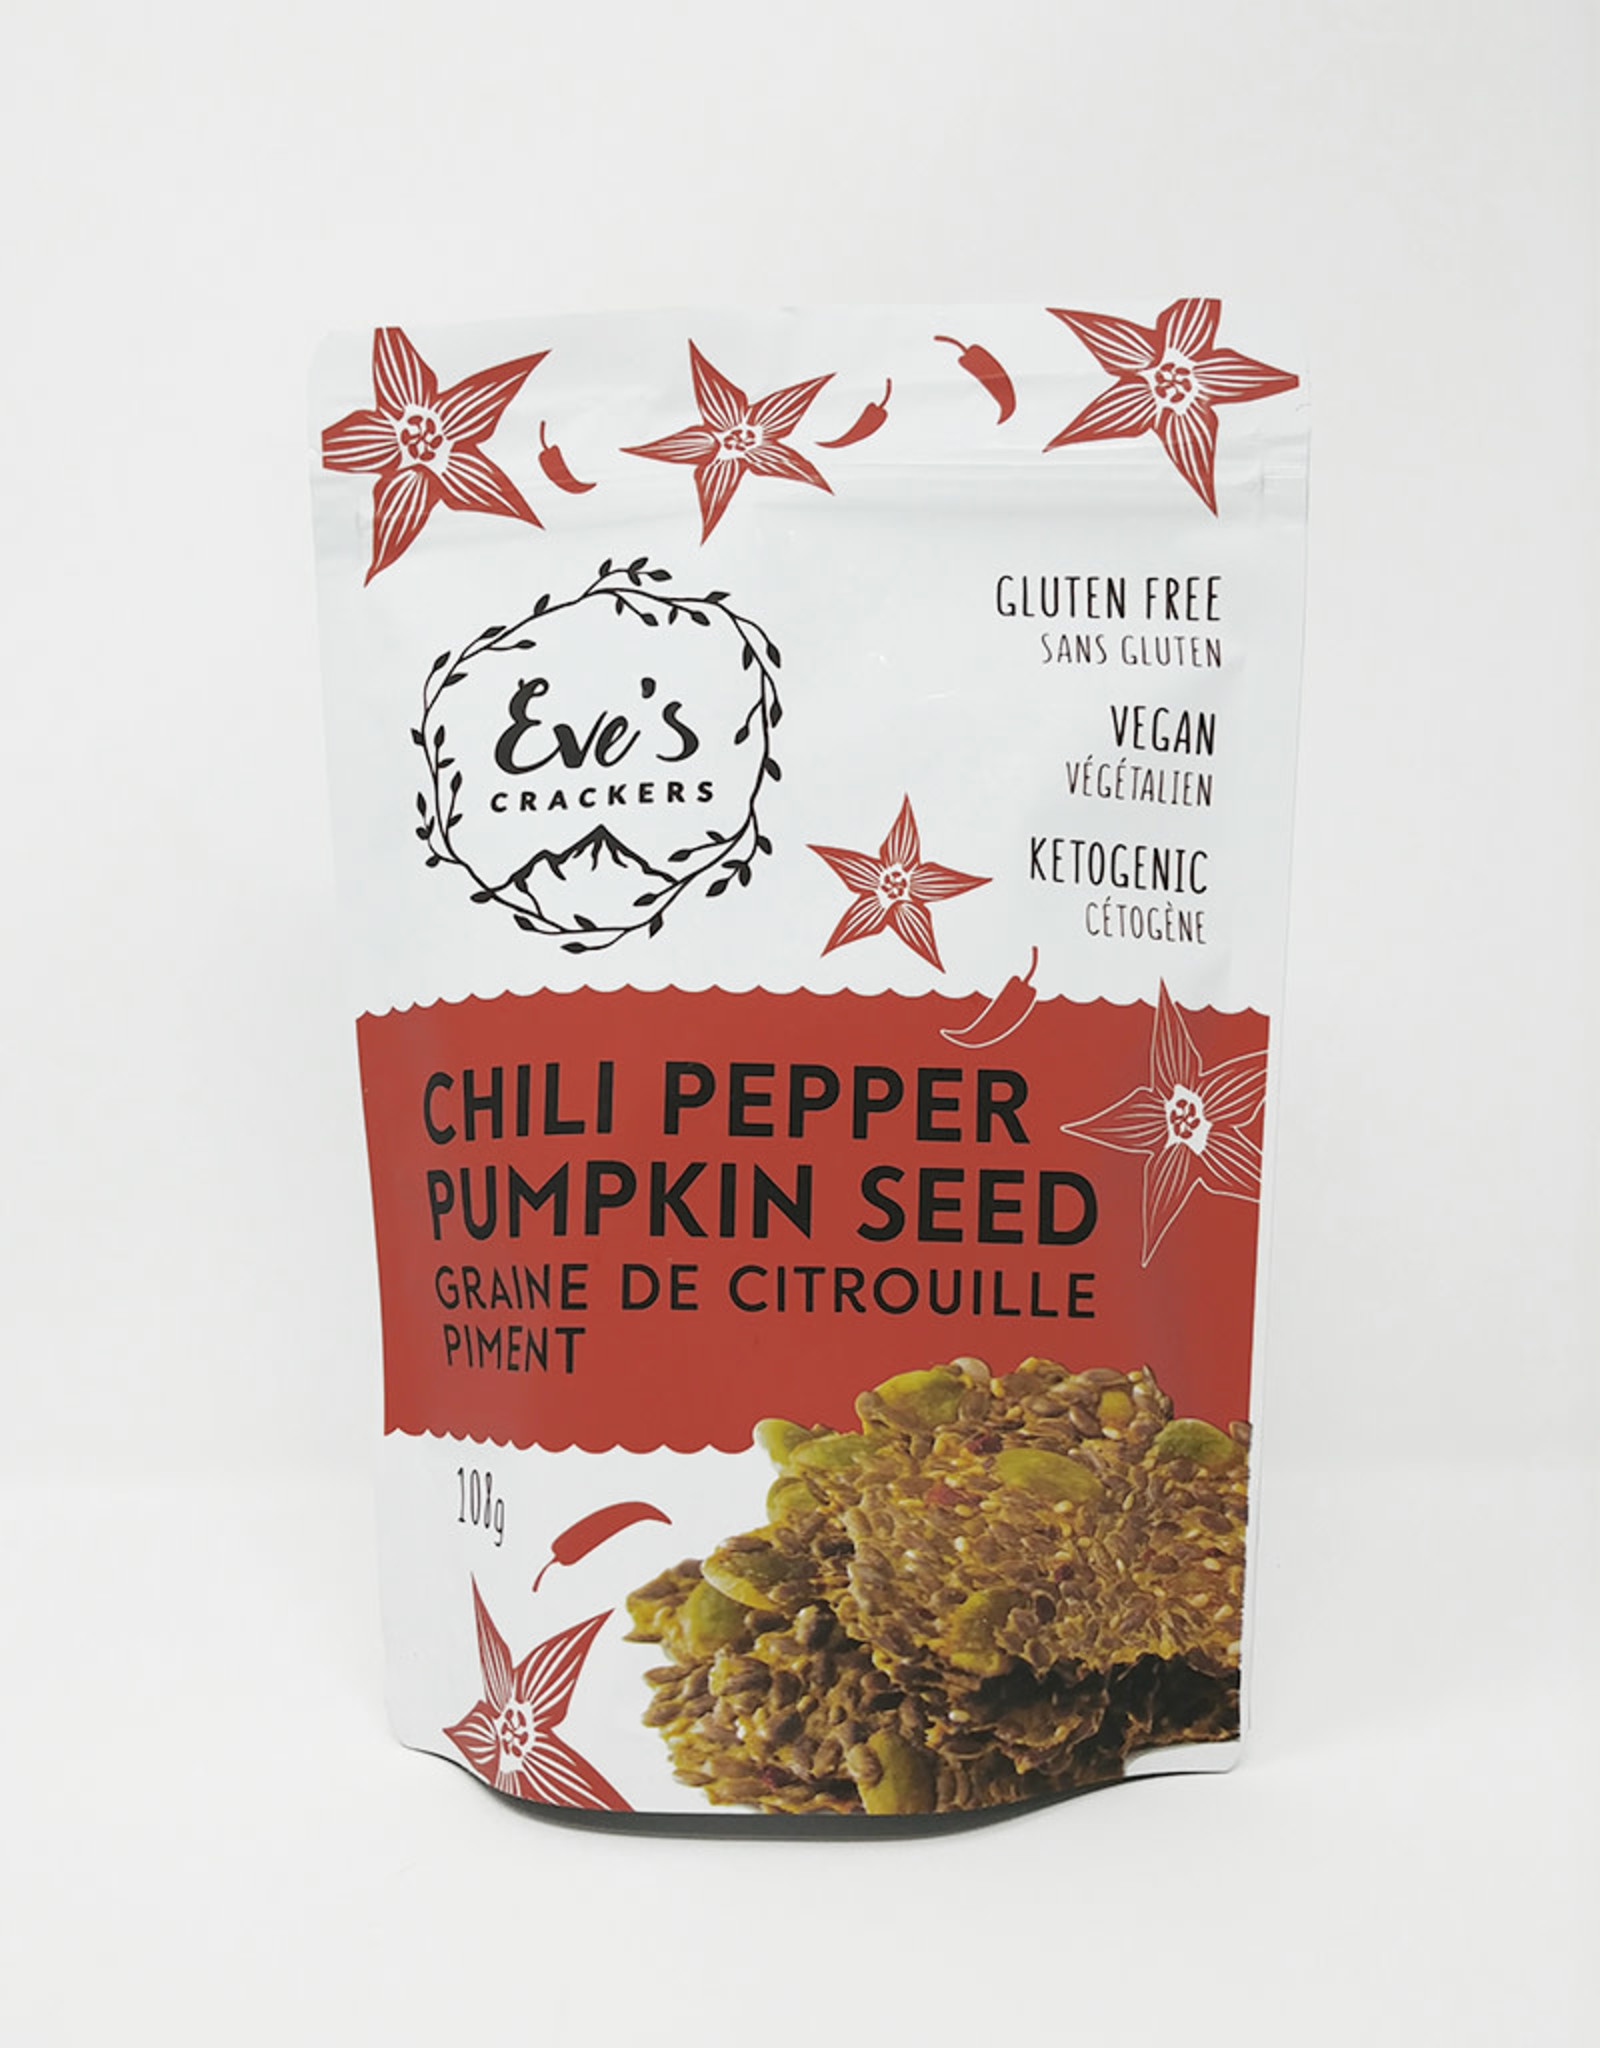 Eves Crackers Eves Crackers - Chili Pepper Pumpkin Seed